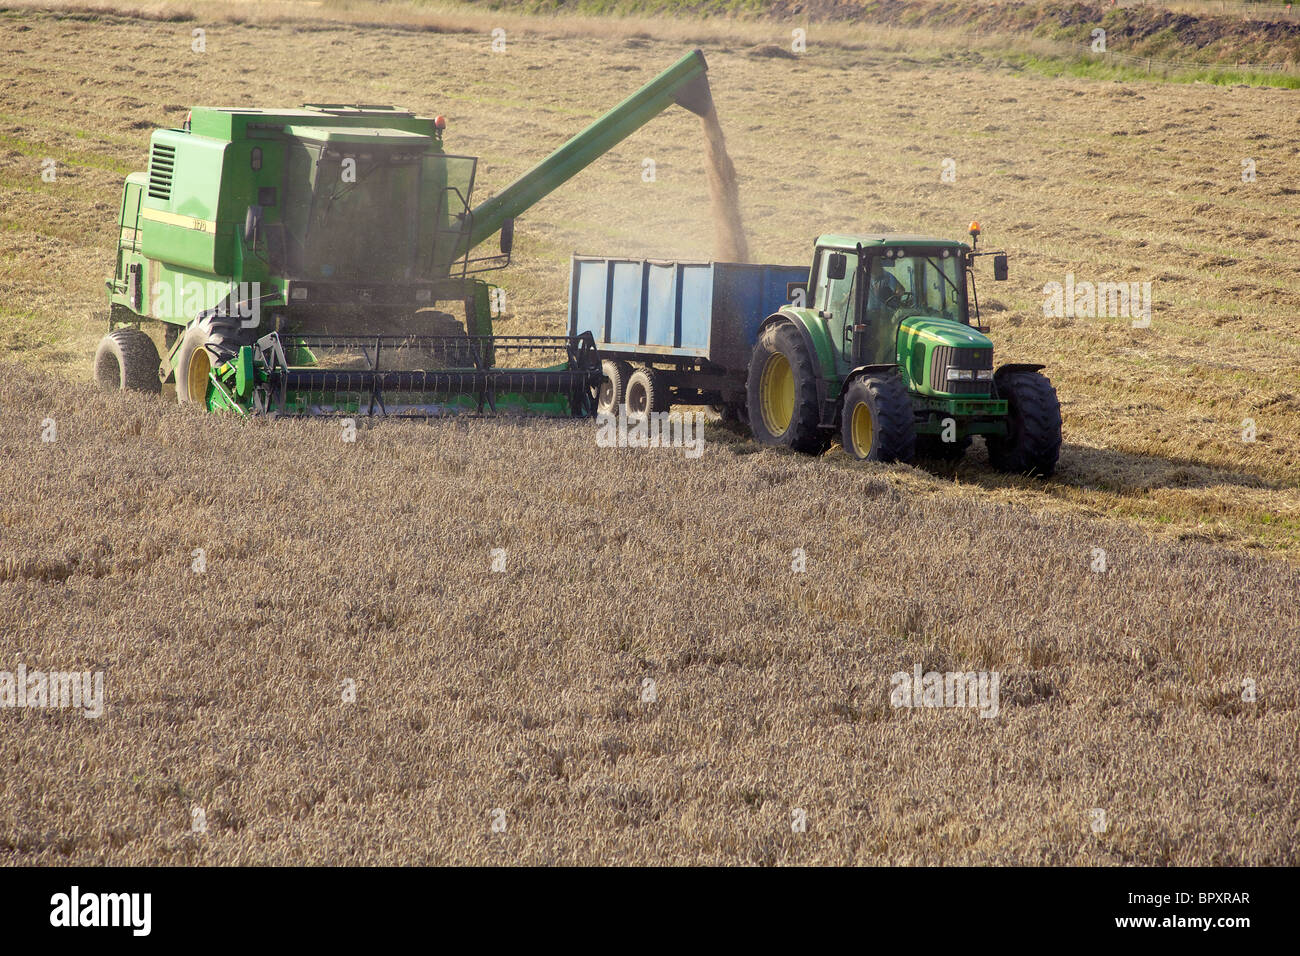 A combined harvester cuts wheat with a tractor and trailer to collect the grain. - Stock Image